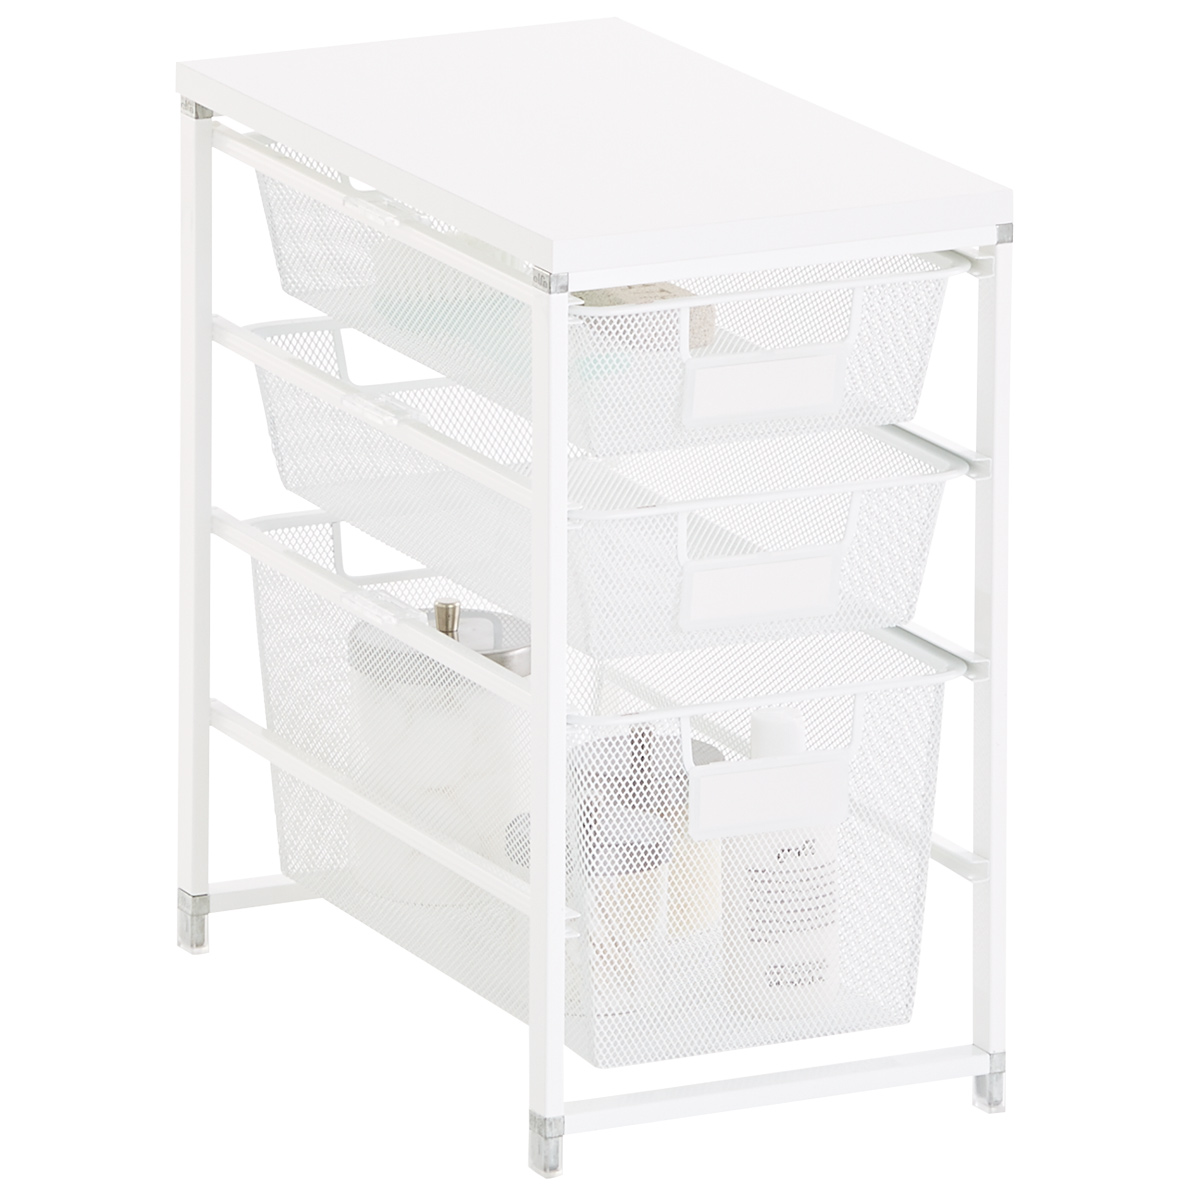 Elfa White Cabinet-Sized Mesh Bath Storage